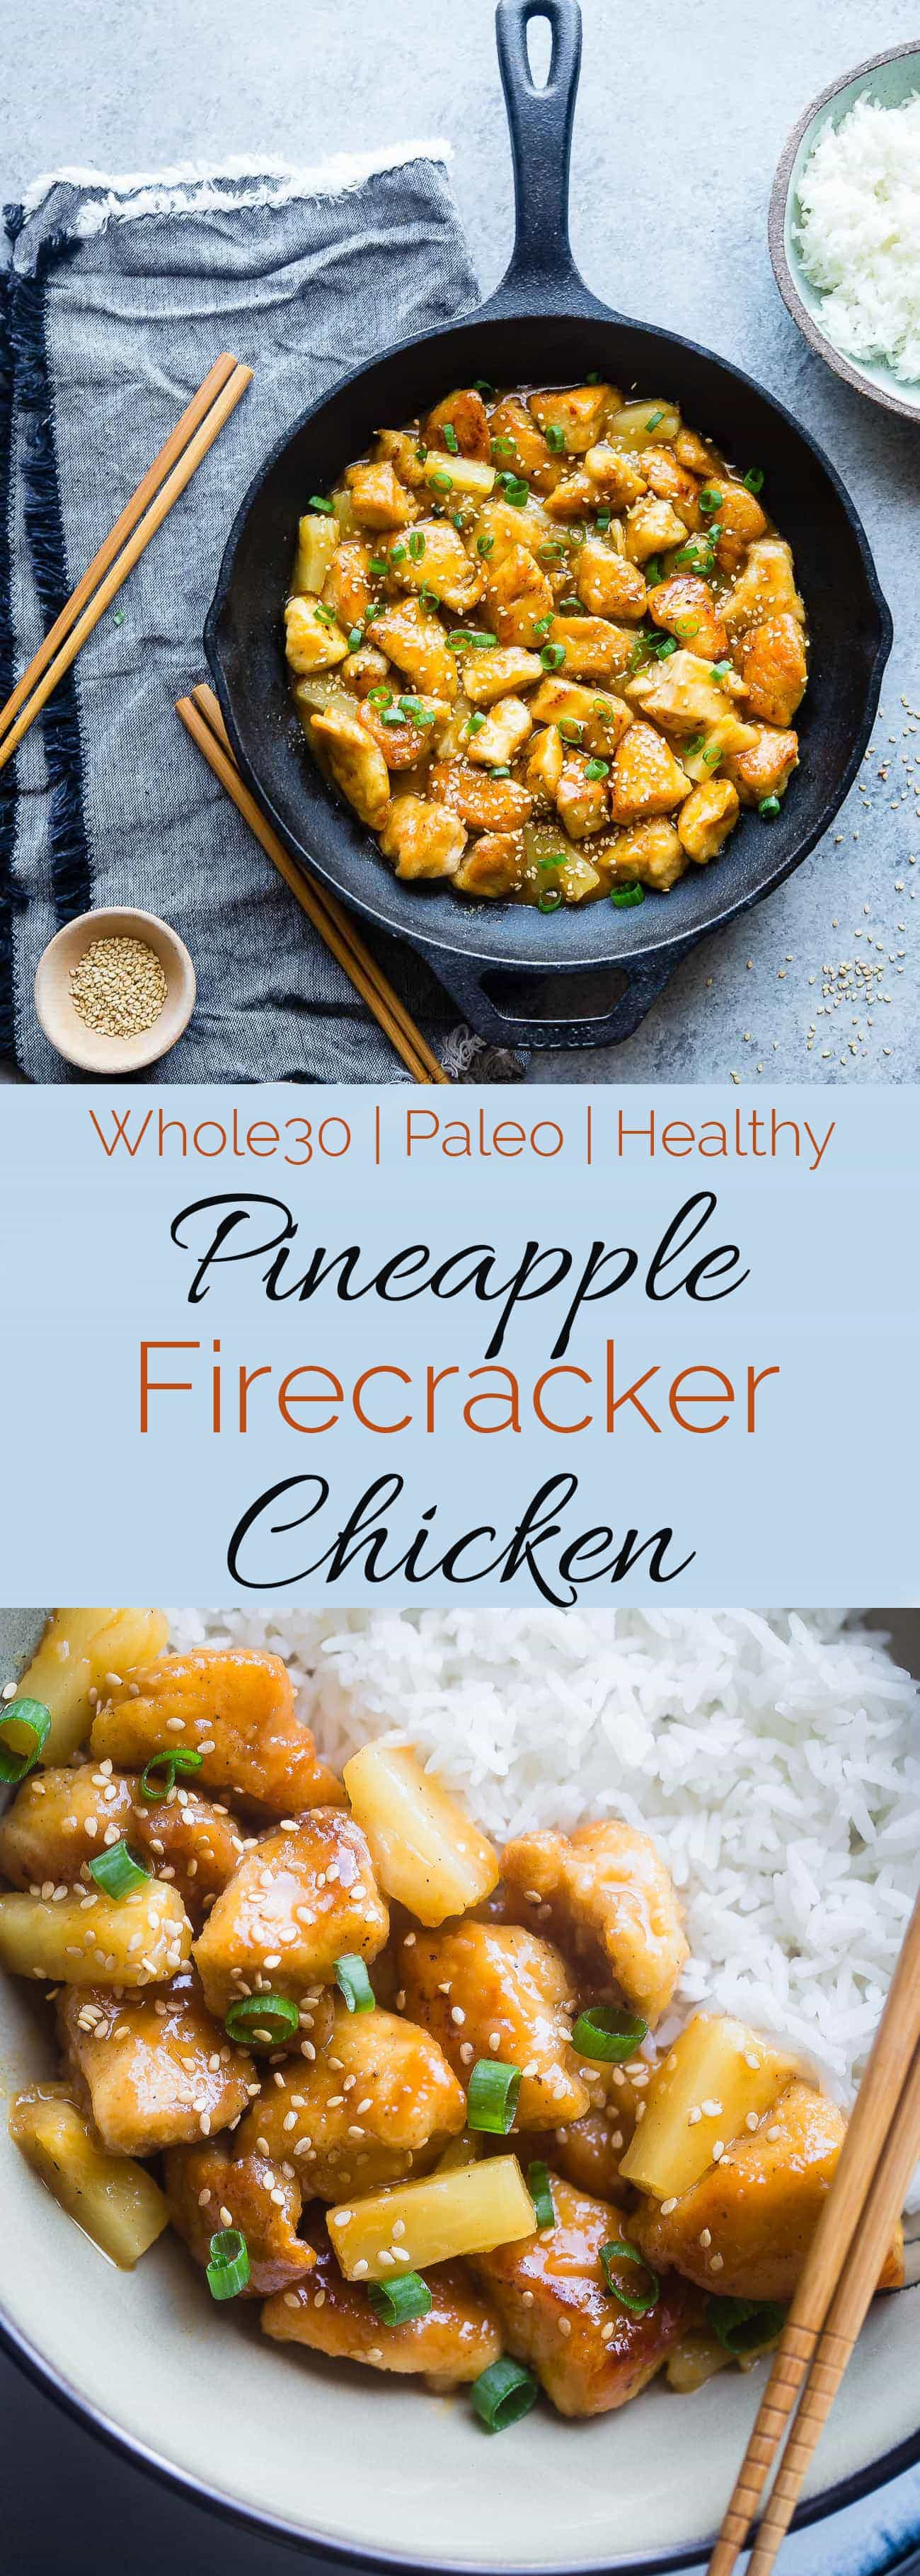 Whole30 Firecracker Pineapple Chicken - This healthy, sweet and spicy chicken is way better than takeout! A gluten free, paleo and whole30 compliant dinner that is always a crowd pleaser! | #Foodfaithfitness | #Paleo #Whole30 #Glutenfree #Healthy